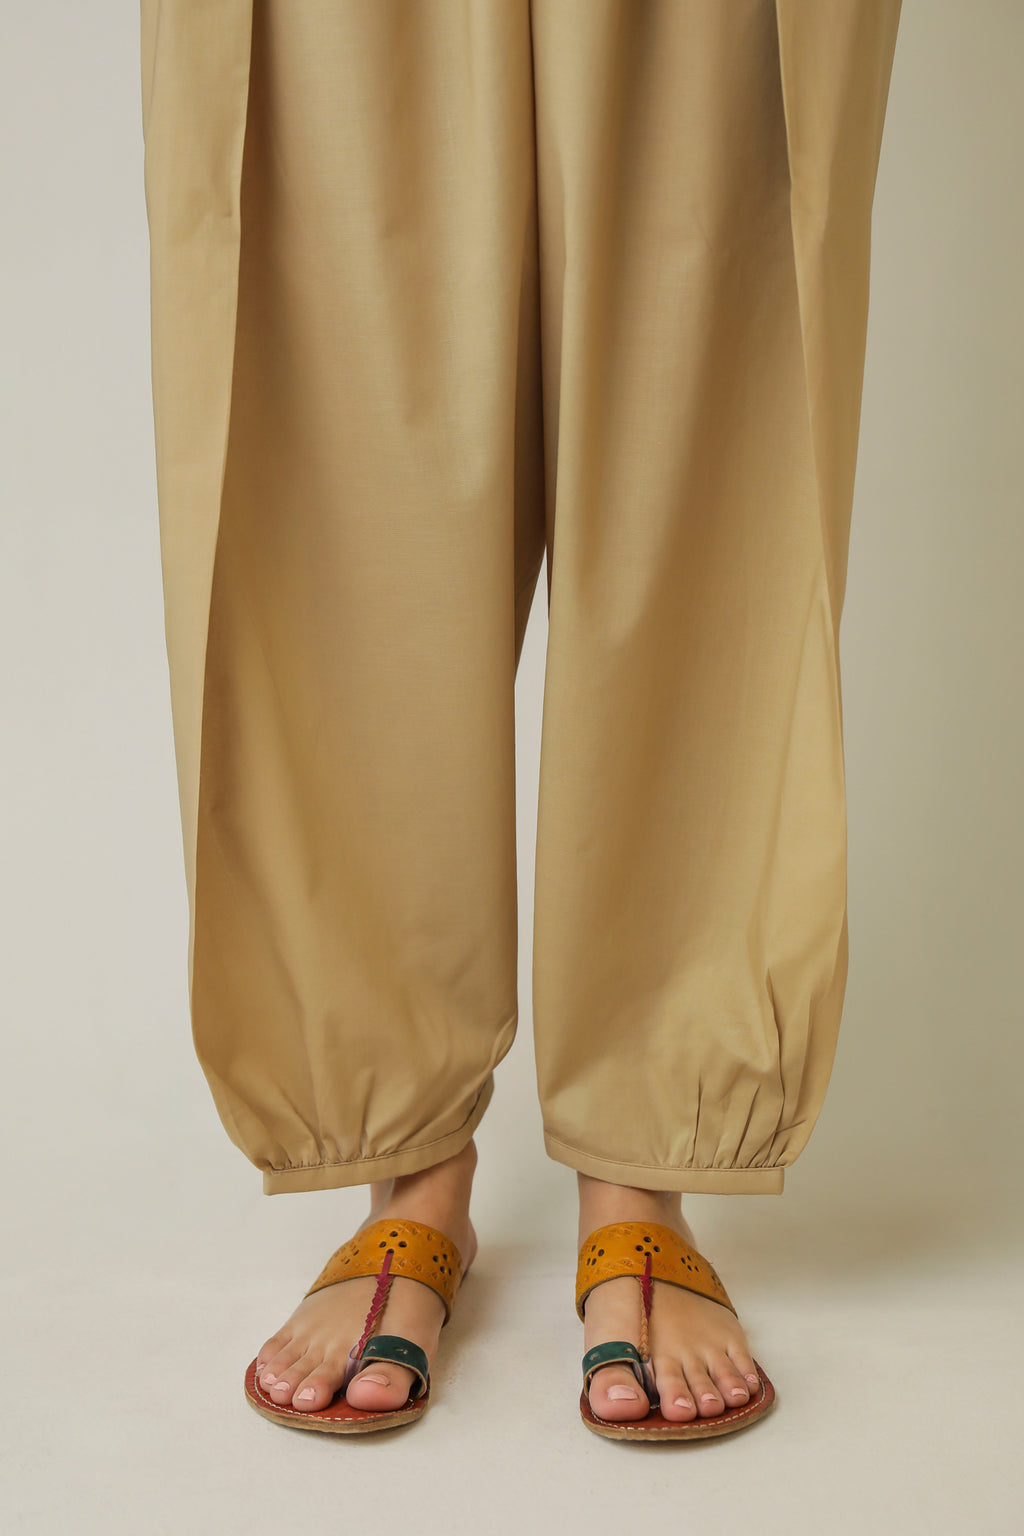 PANTALOON (WBC111221) - Ethnic by Outfitters